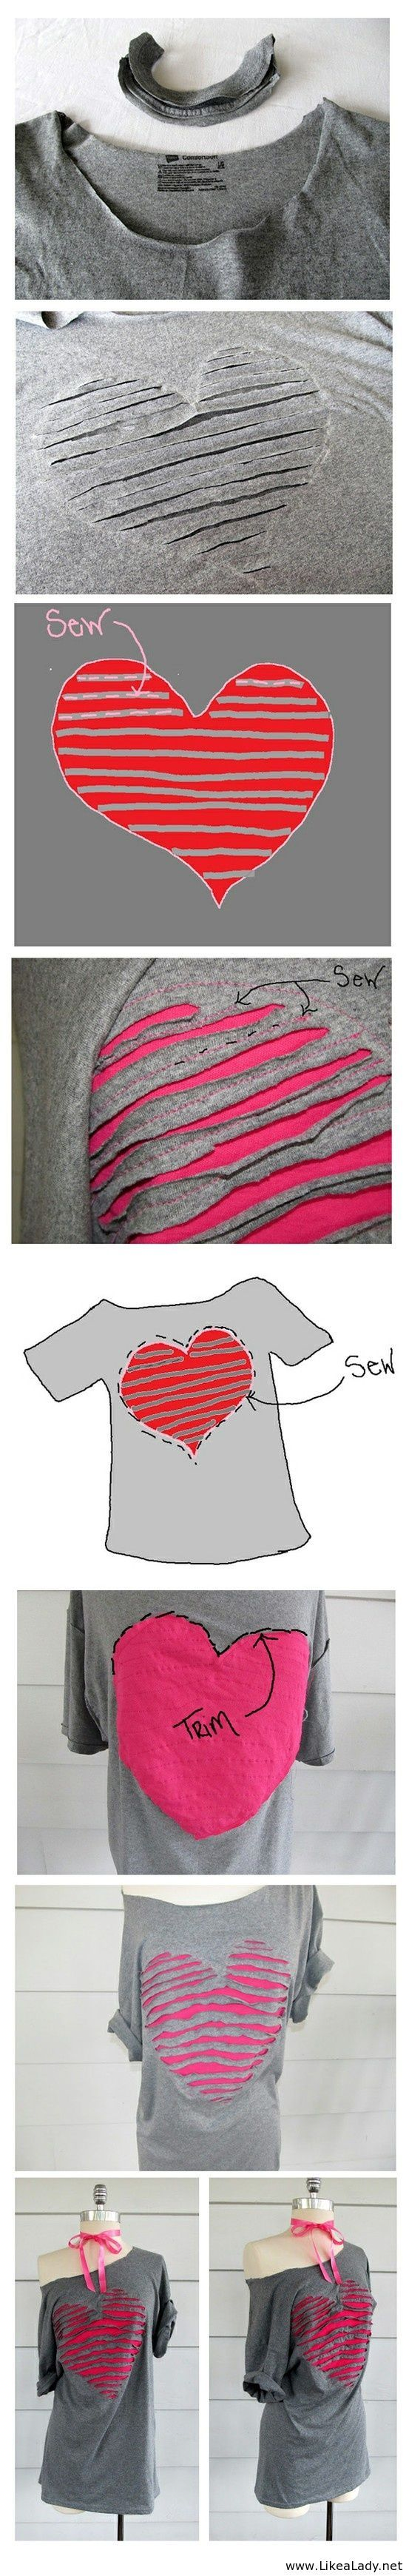 It might be fun to do just the heart part, or any shape for that matter... It would be a great gift idea for my sis.